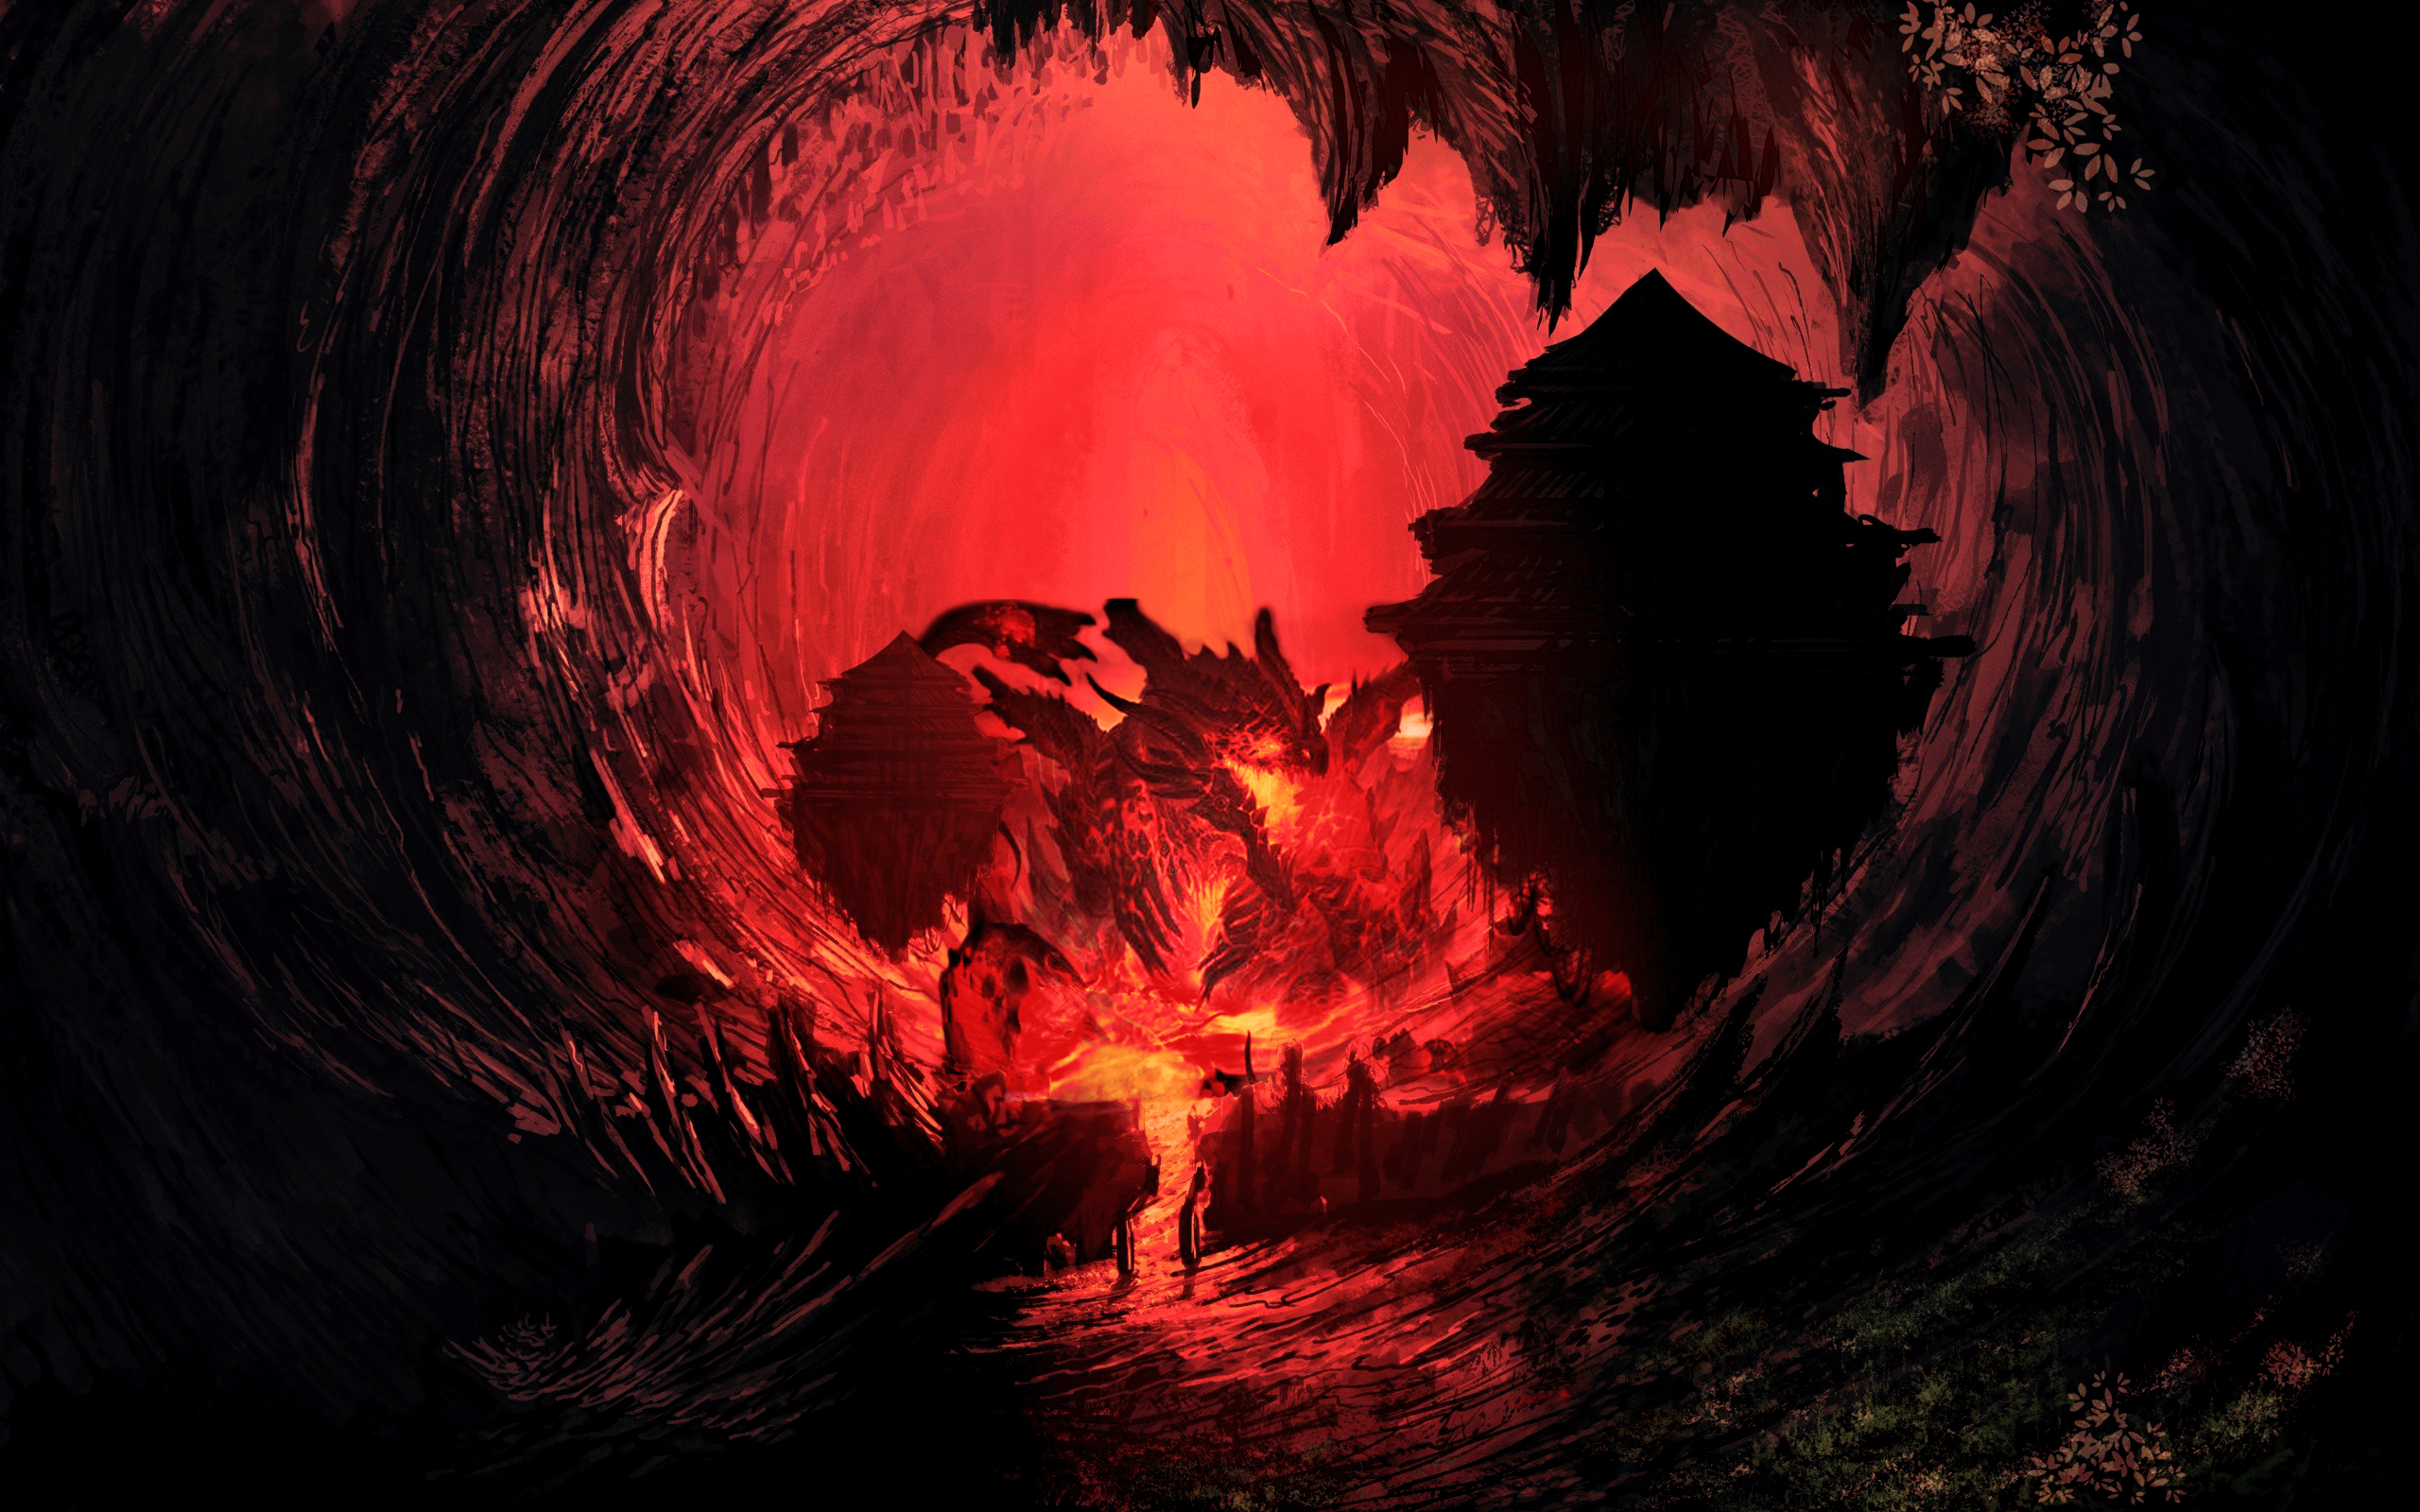 469872-airbrushed-artwork-cavern-concept-art-digital-art-fantasy-art-fire-floating-landscapes-painti.jpg